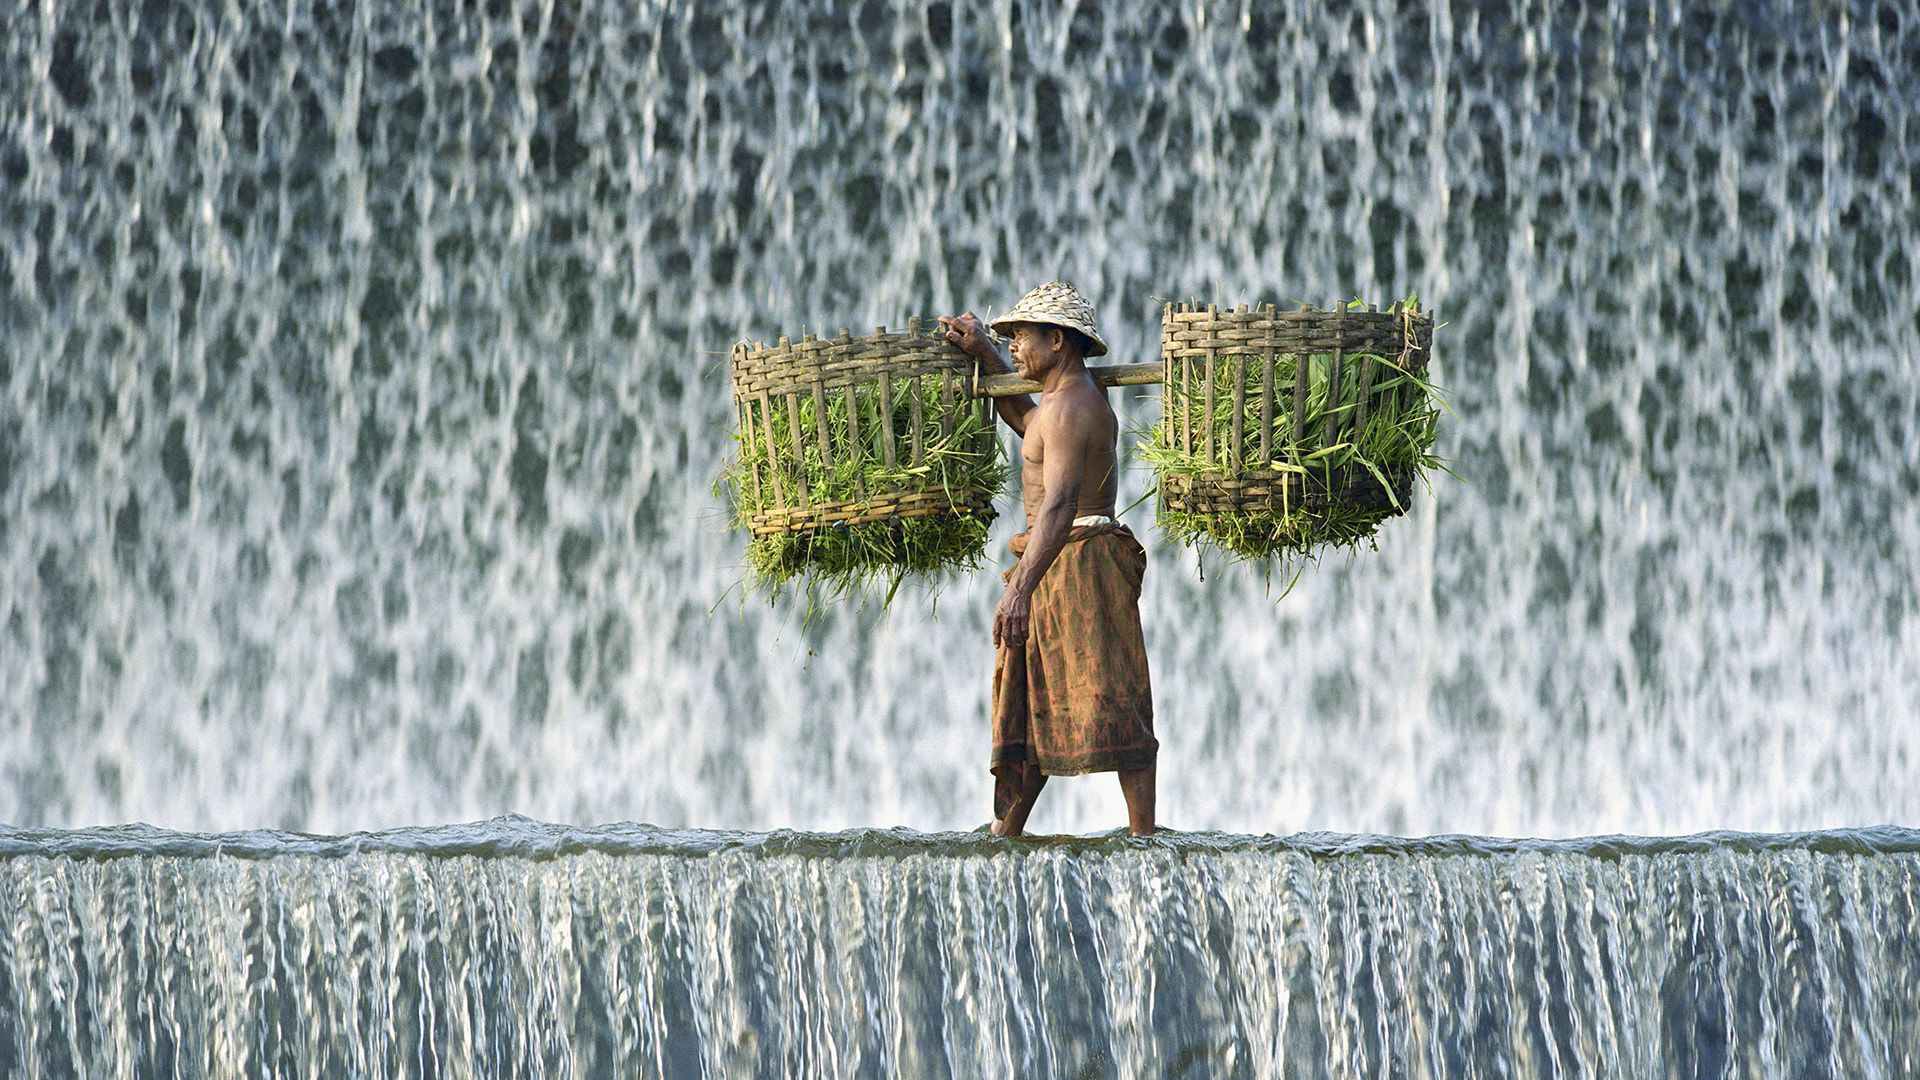 Man Carrying Baskets Of Animal Fodder Past Waterfall